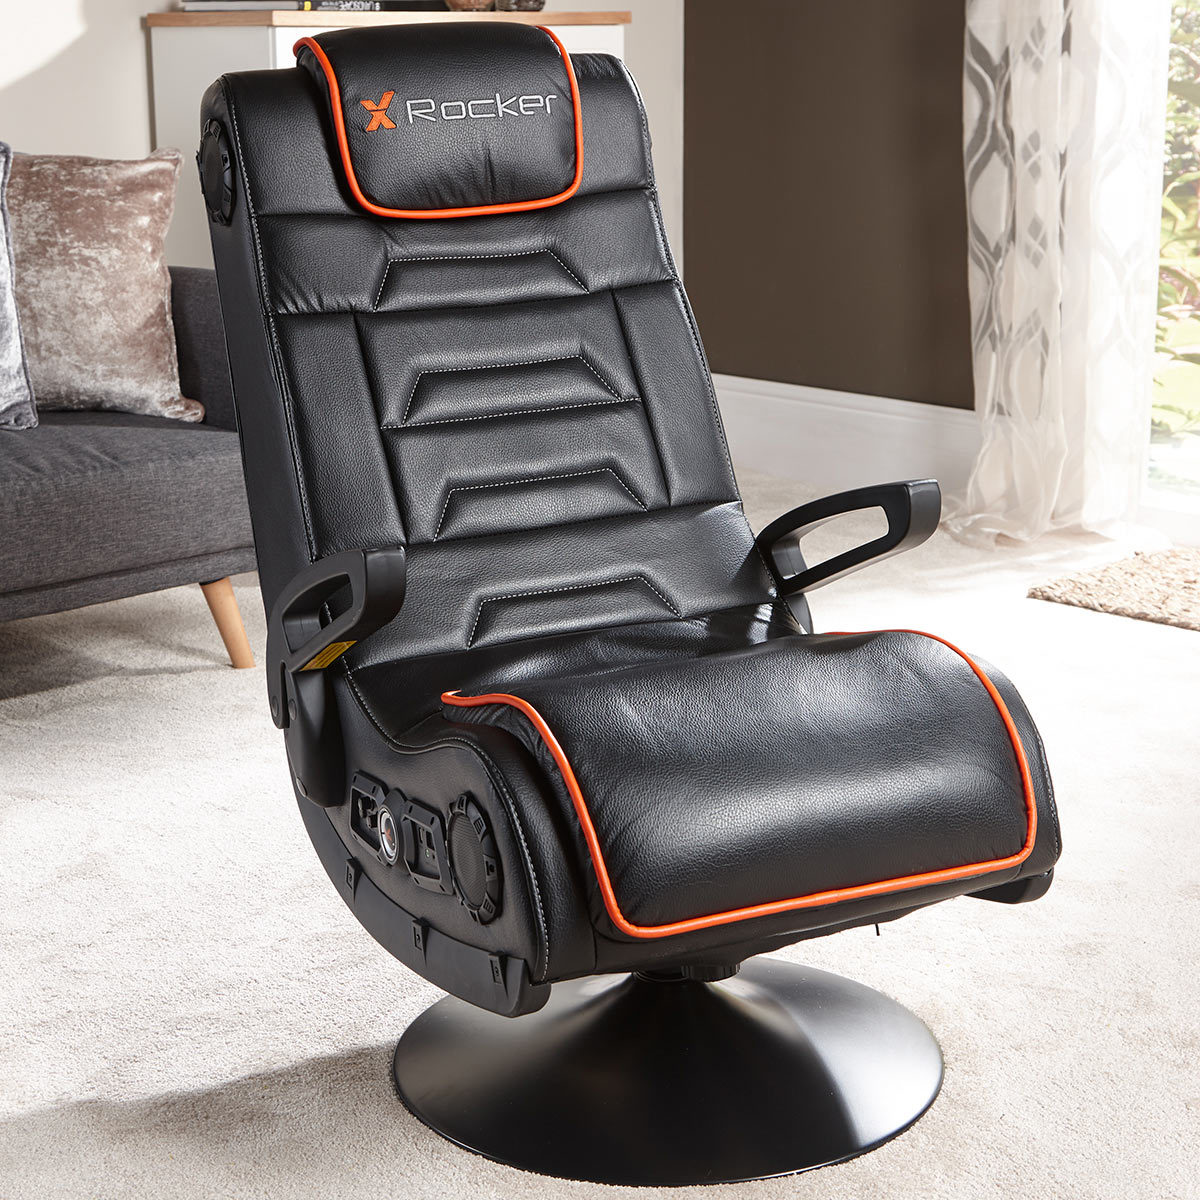 Game Chair With Speakers Details About X Rocker Gaming Chair With Built In Bluetooth Speakers Xbox Ps4 Nintendo Iphone